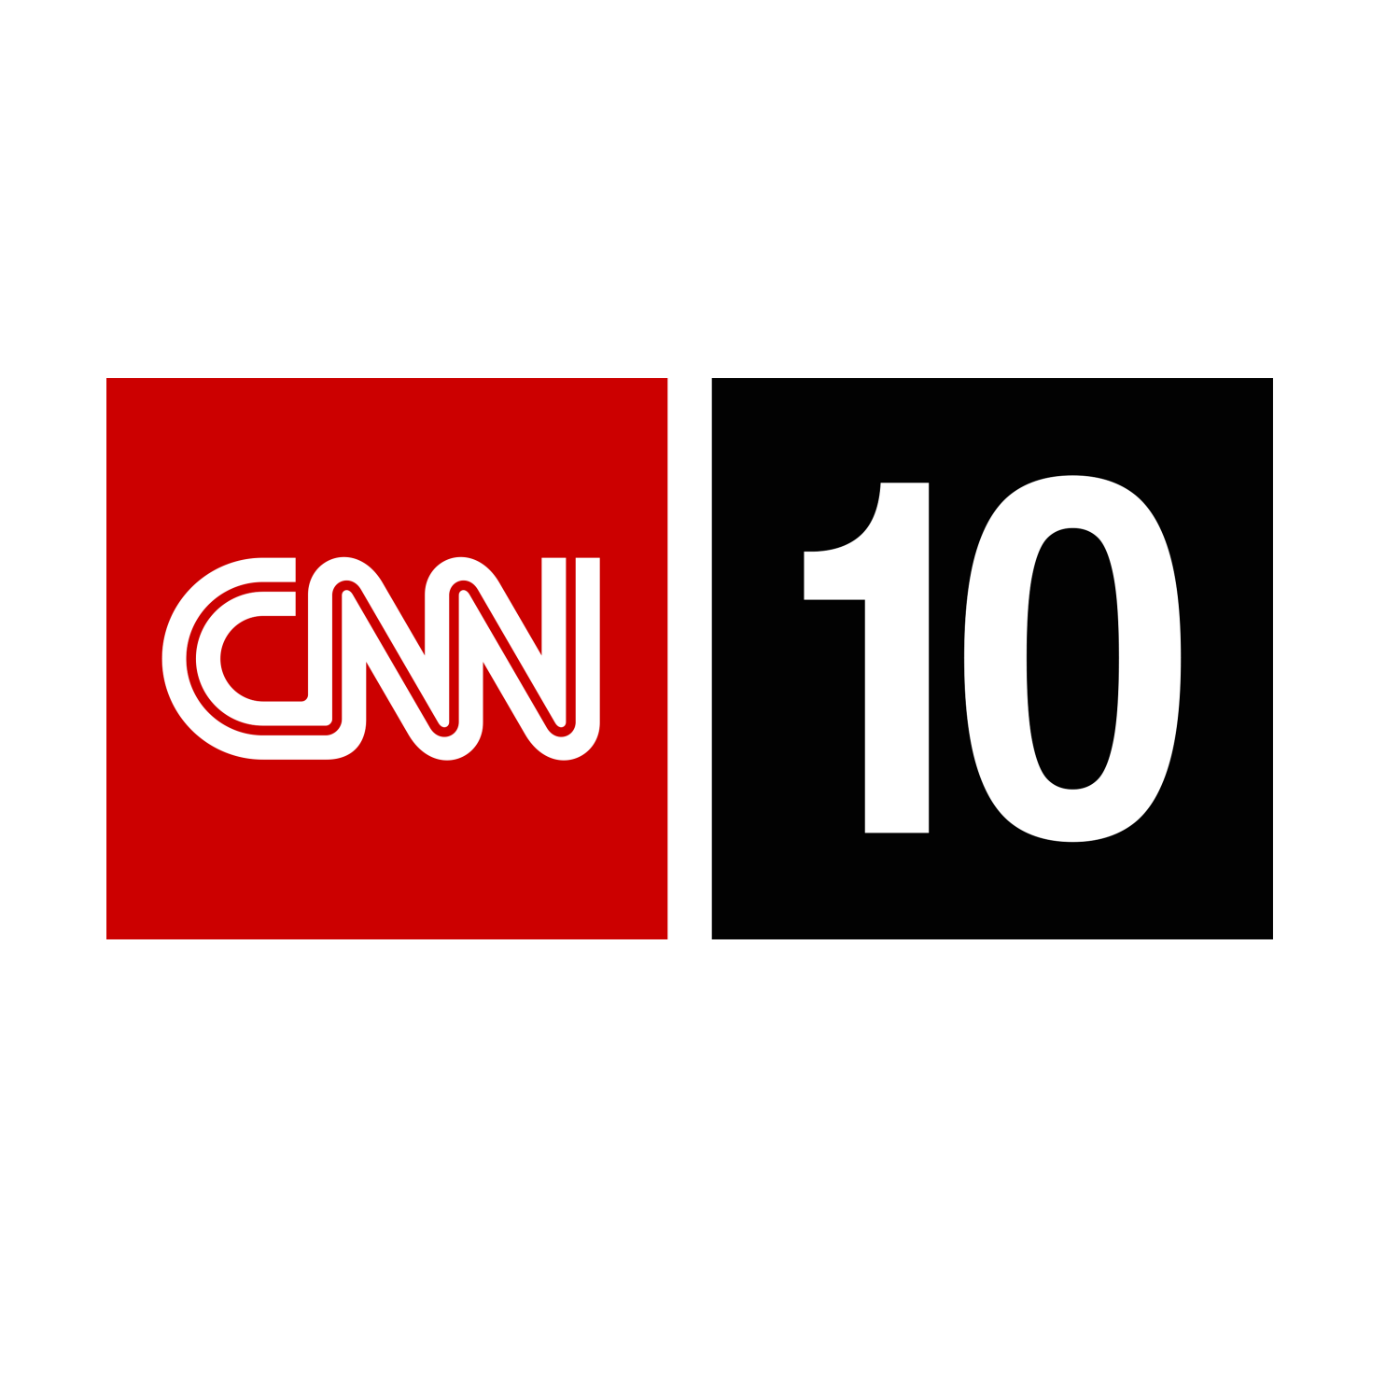 CNN Student News - May 31, 2013